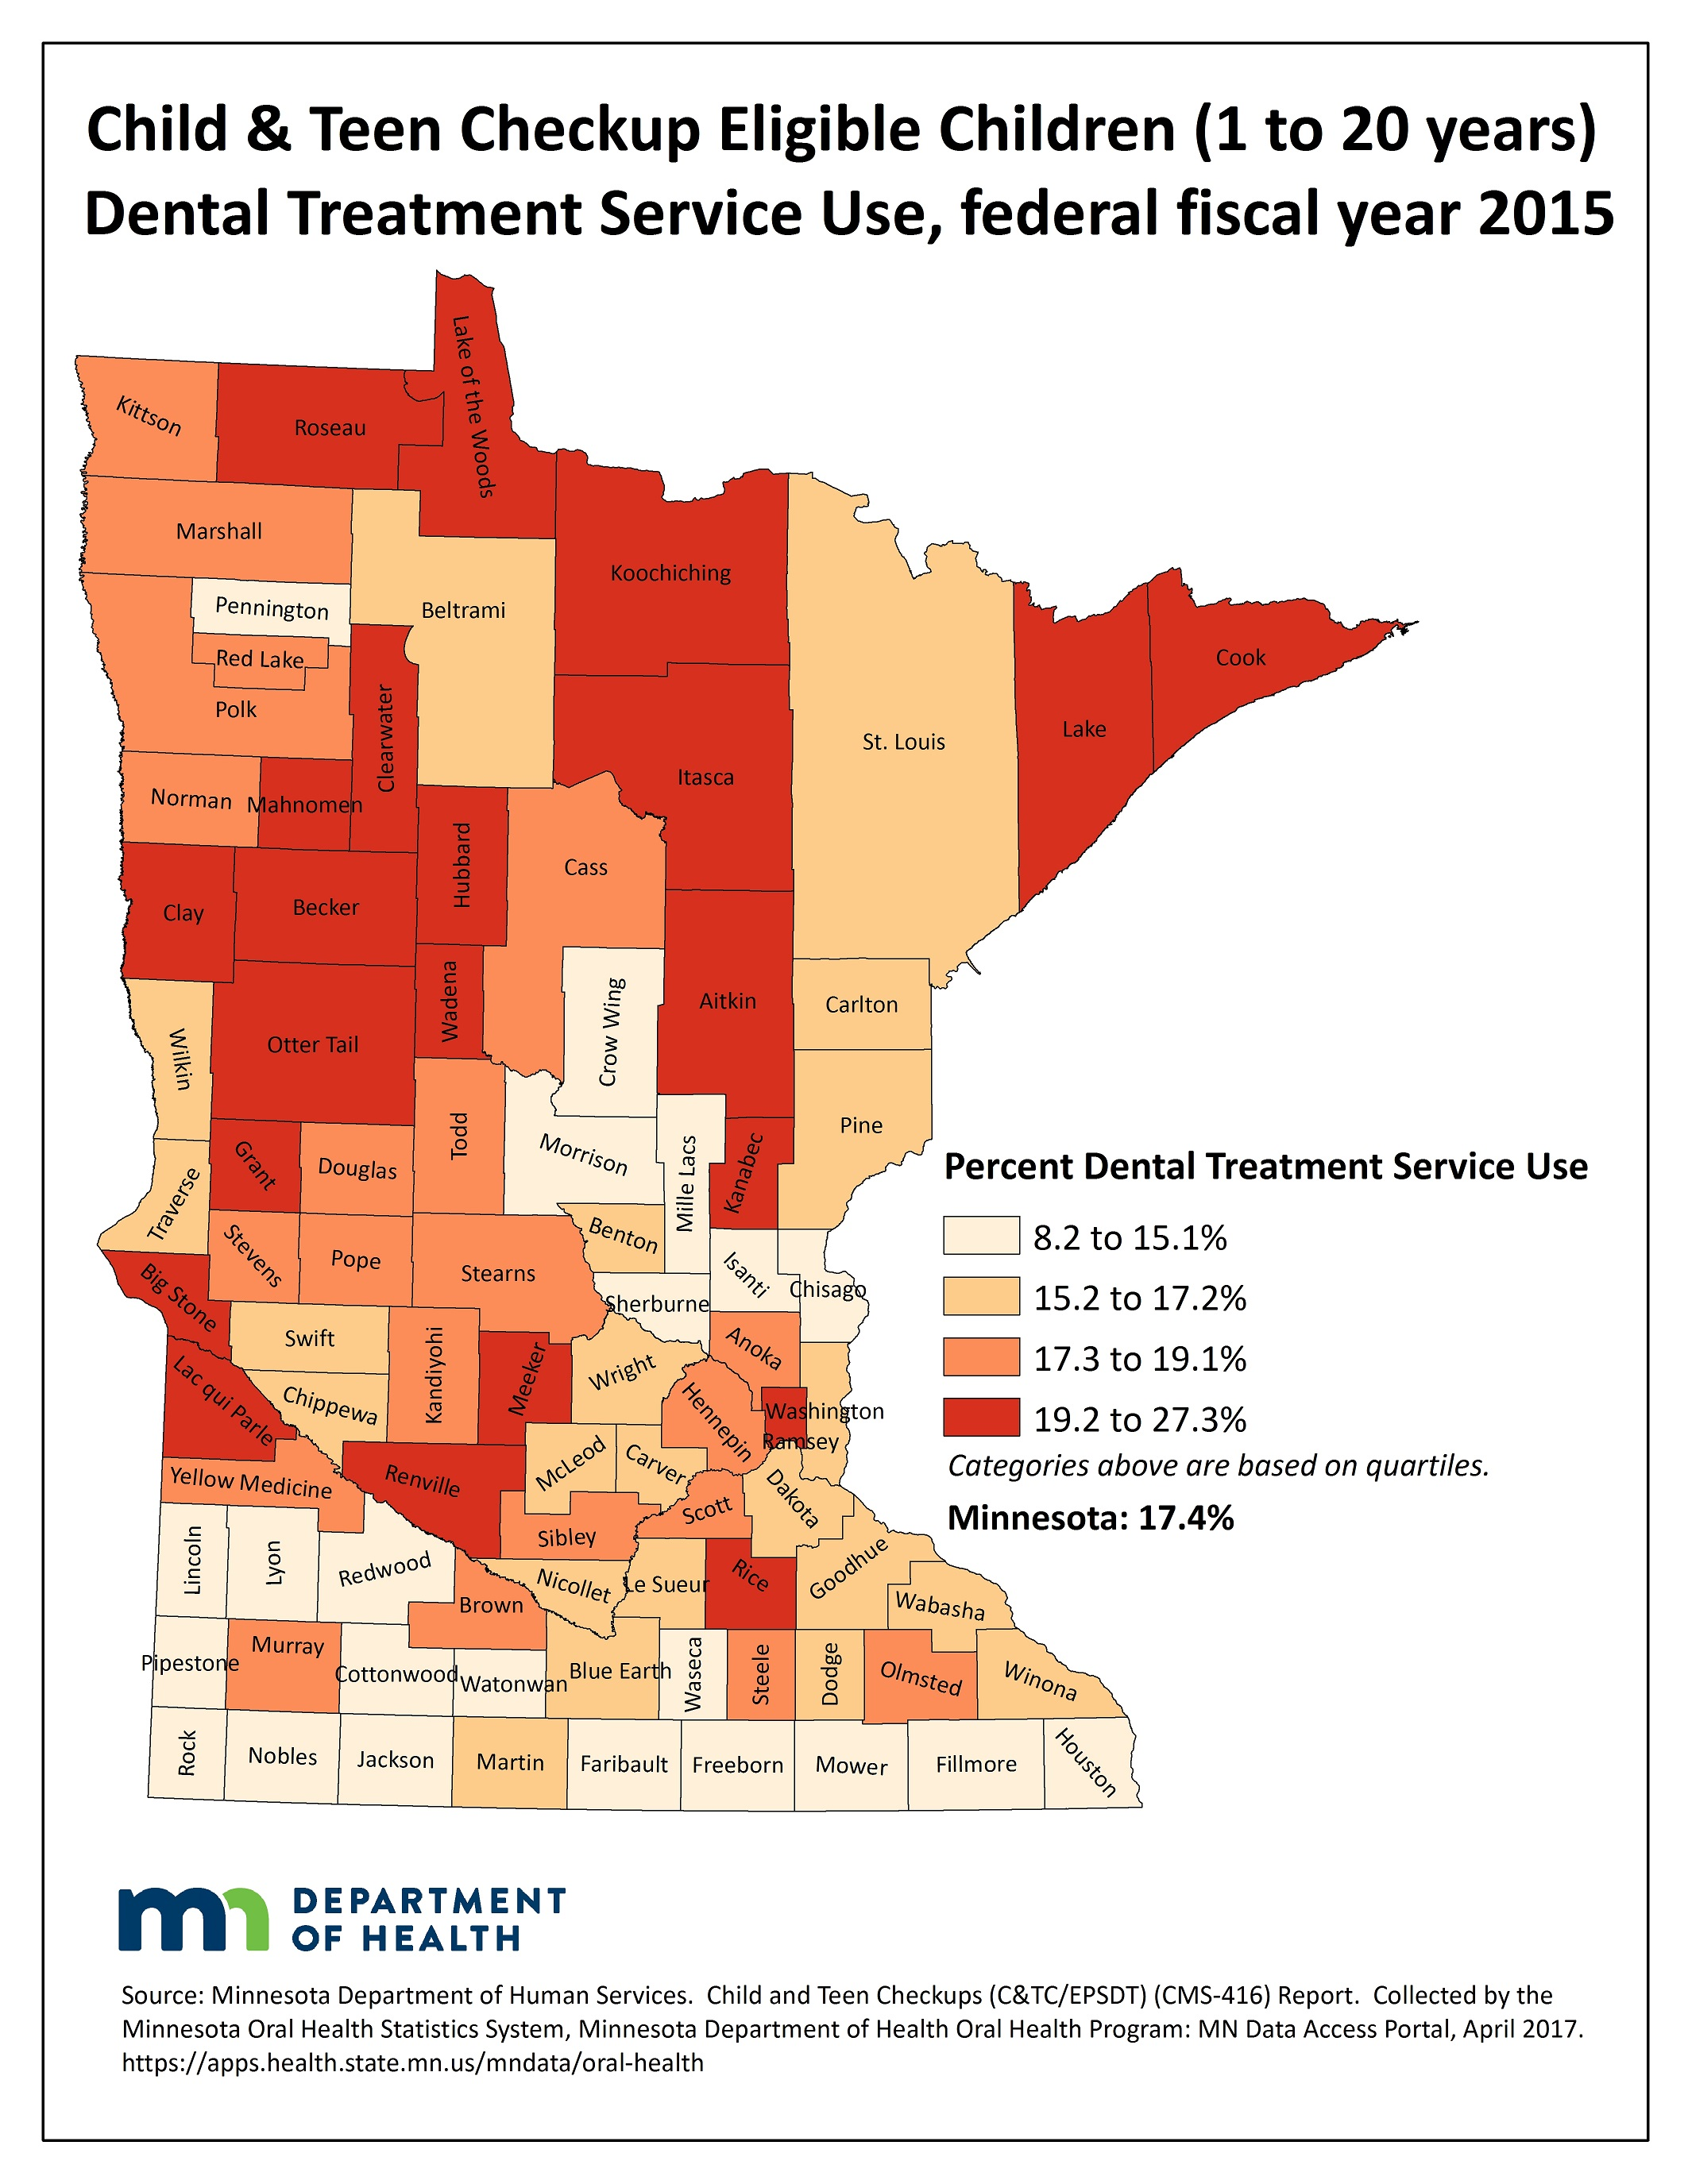 County map image Child & Teen Checkup Eligible Children (1 to 20 years) Dental Treatment Service Use and link to PDF of the same